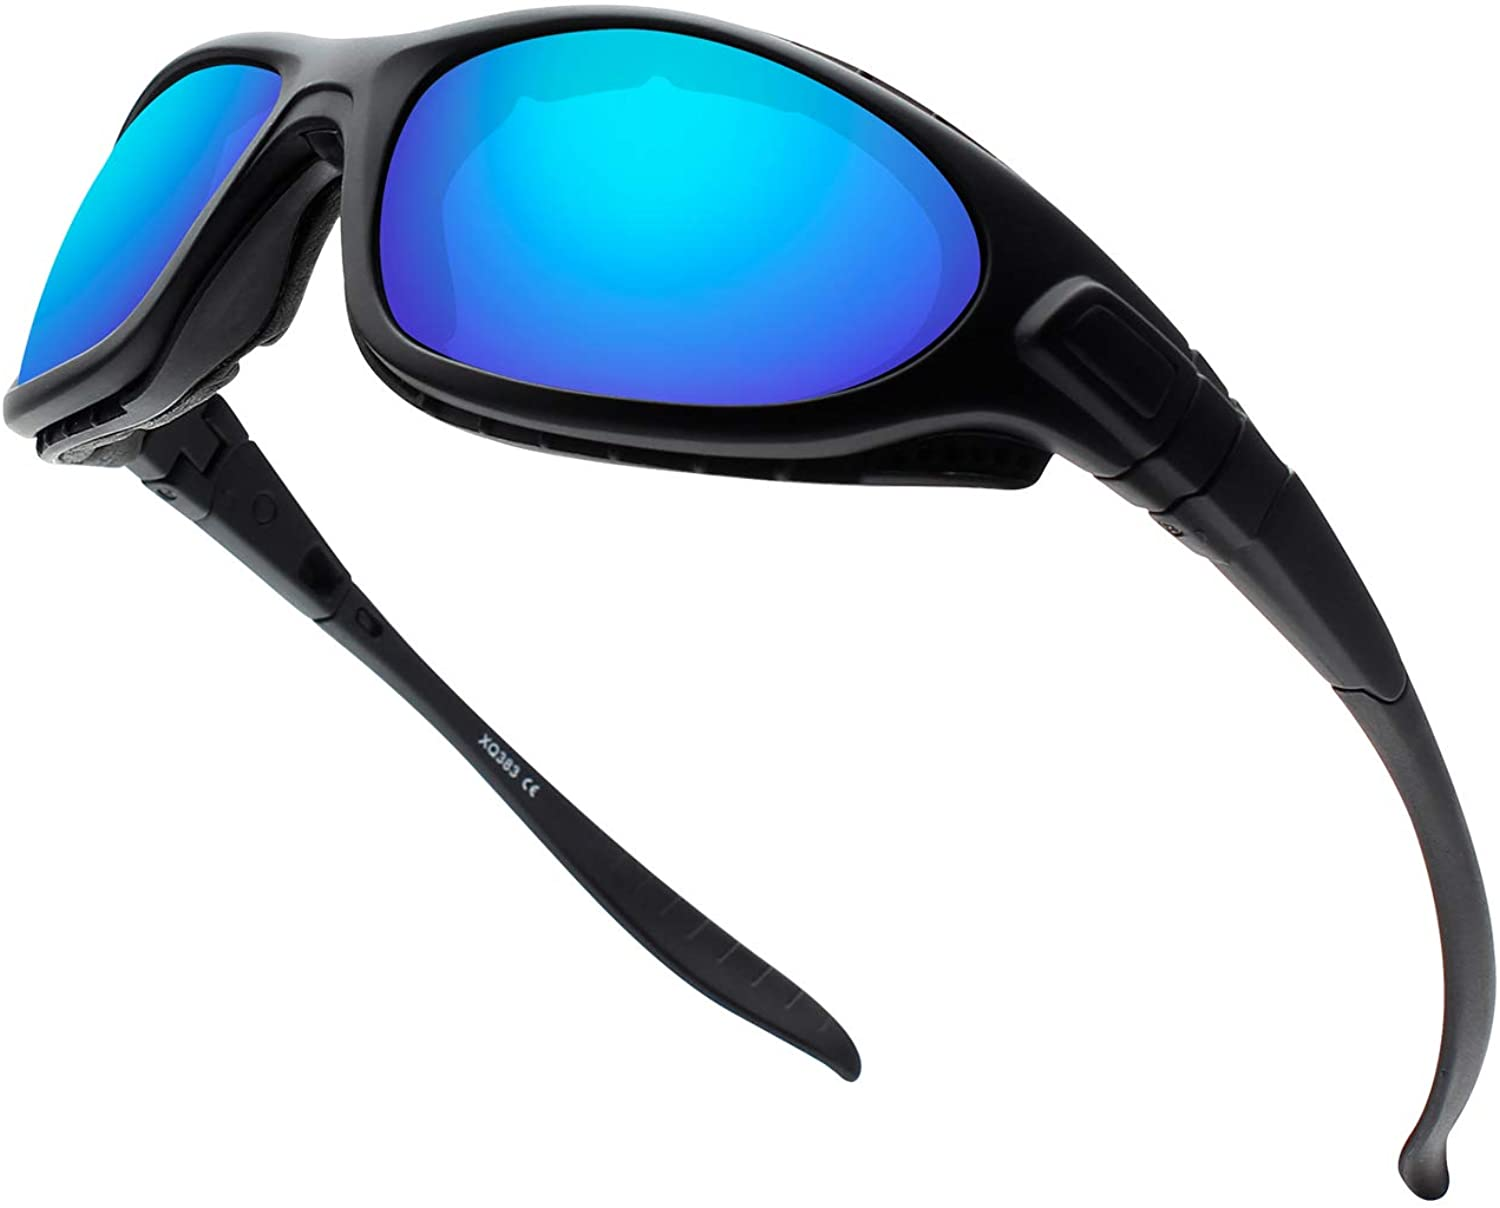 Polarized Sports Sunglasses Cycling Sunglasses With Foam Lining For Men Women TR90 Frame Running Driving Fishing